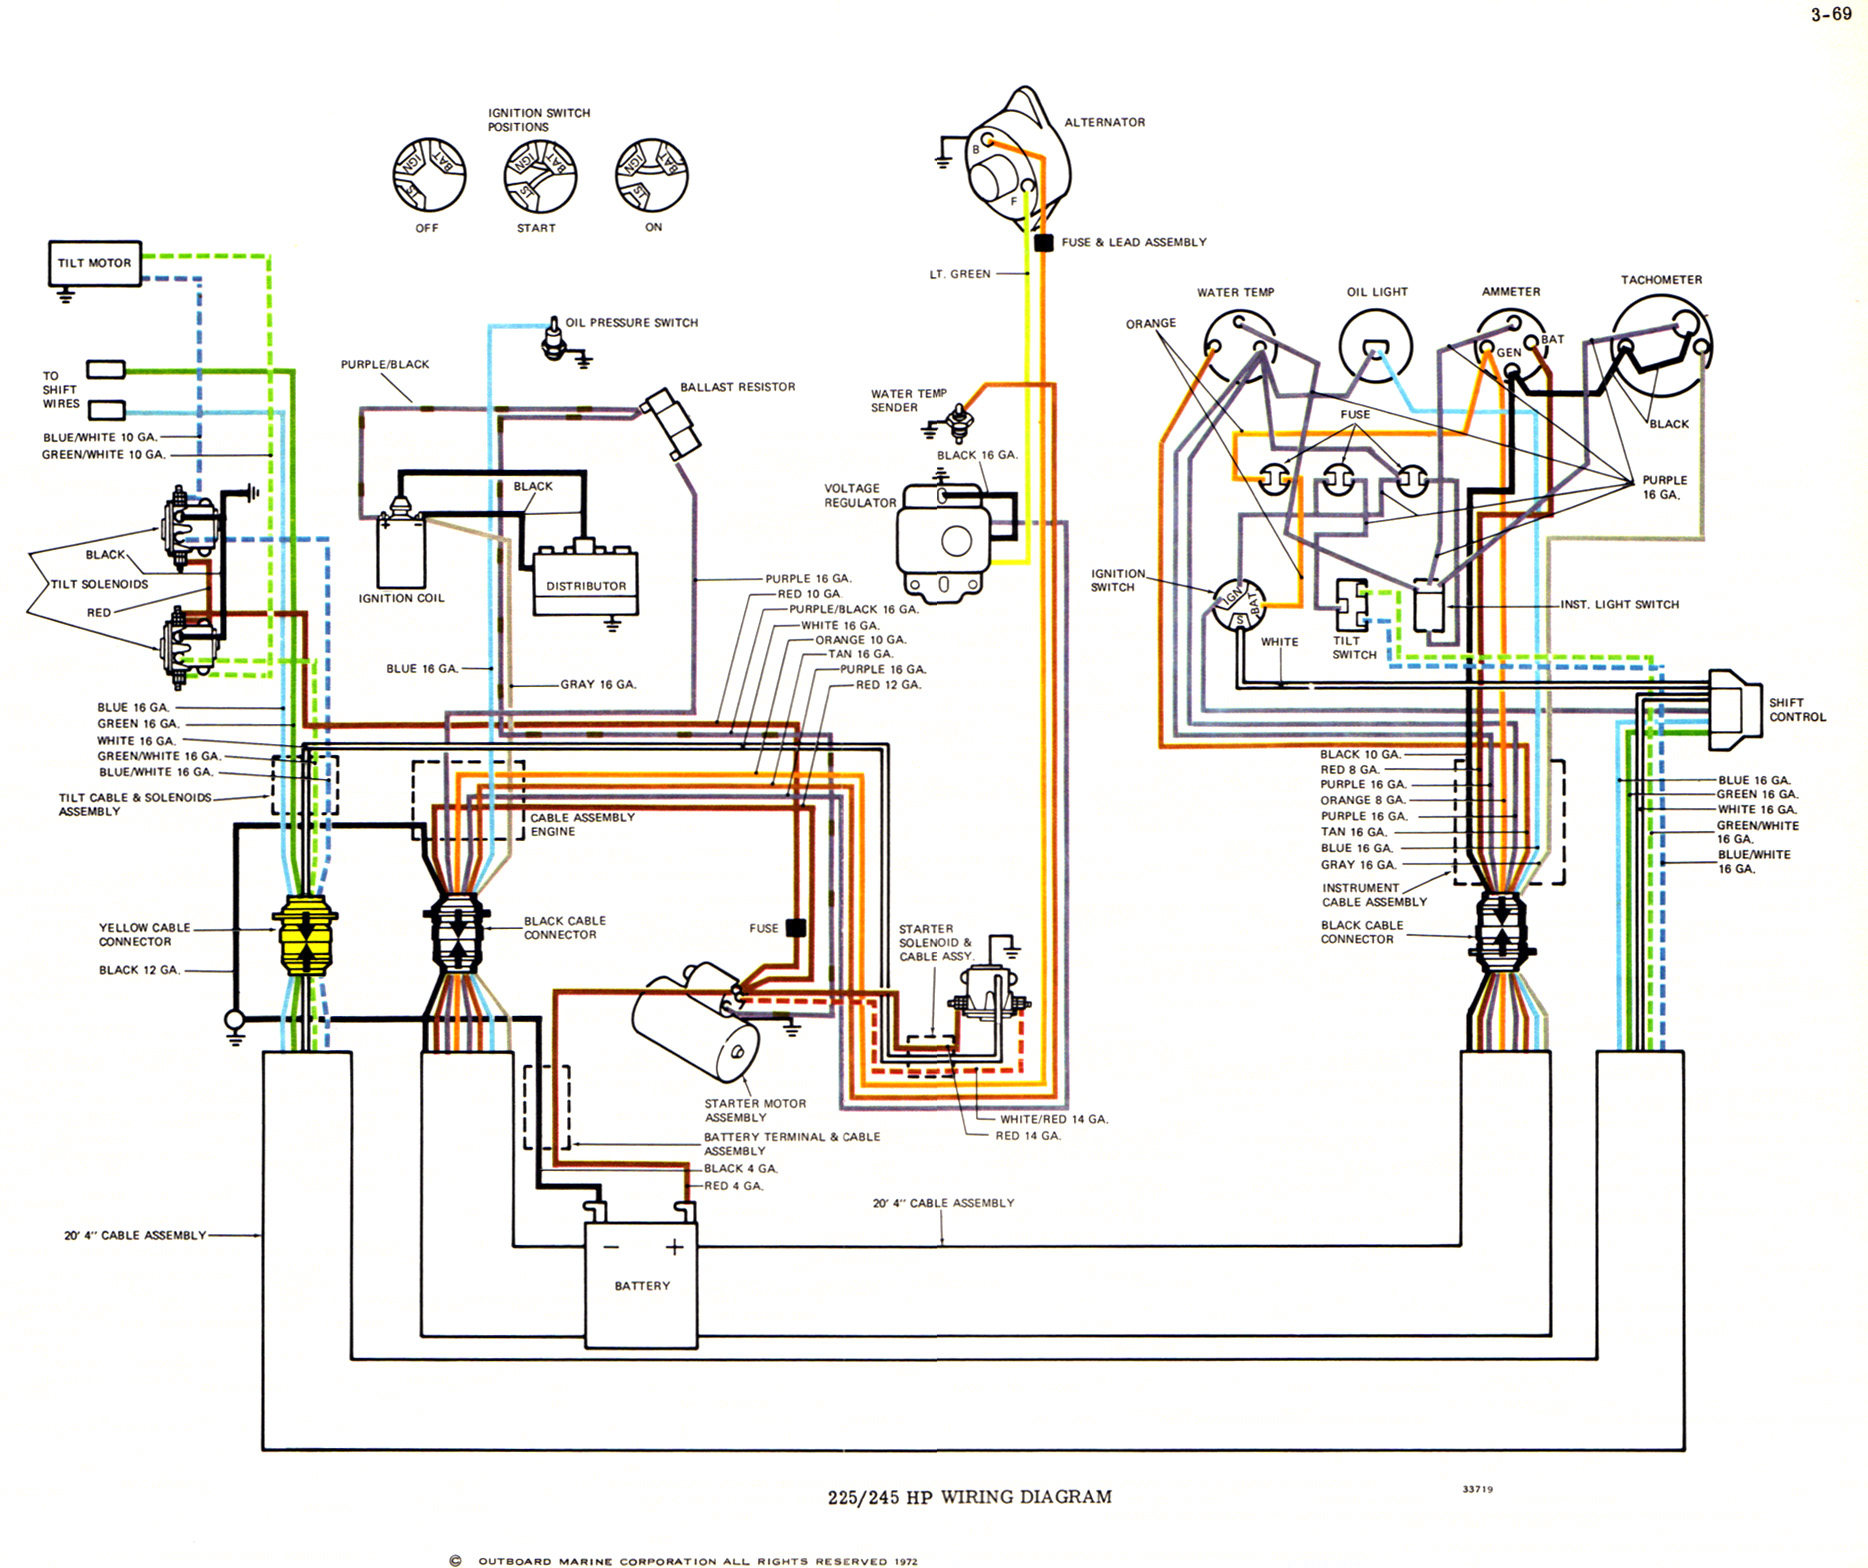 Omc Starter Solenoid Wiring Diagram Not Lossing Troy Built 12 Volt Images Gallery